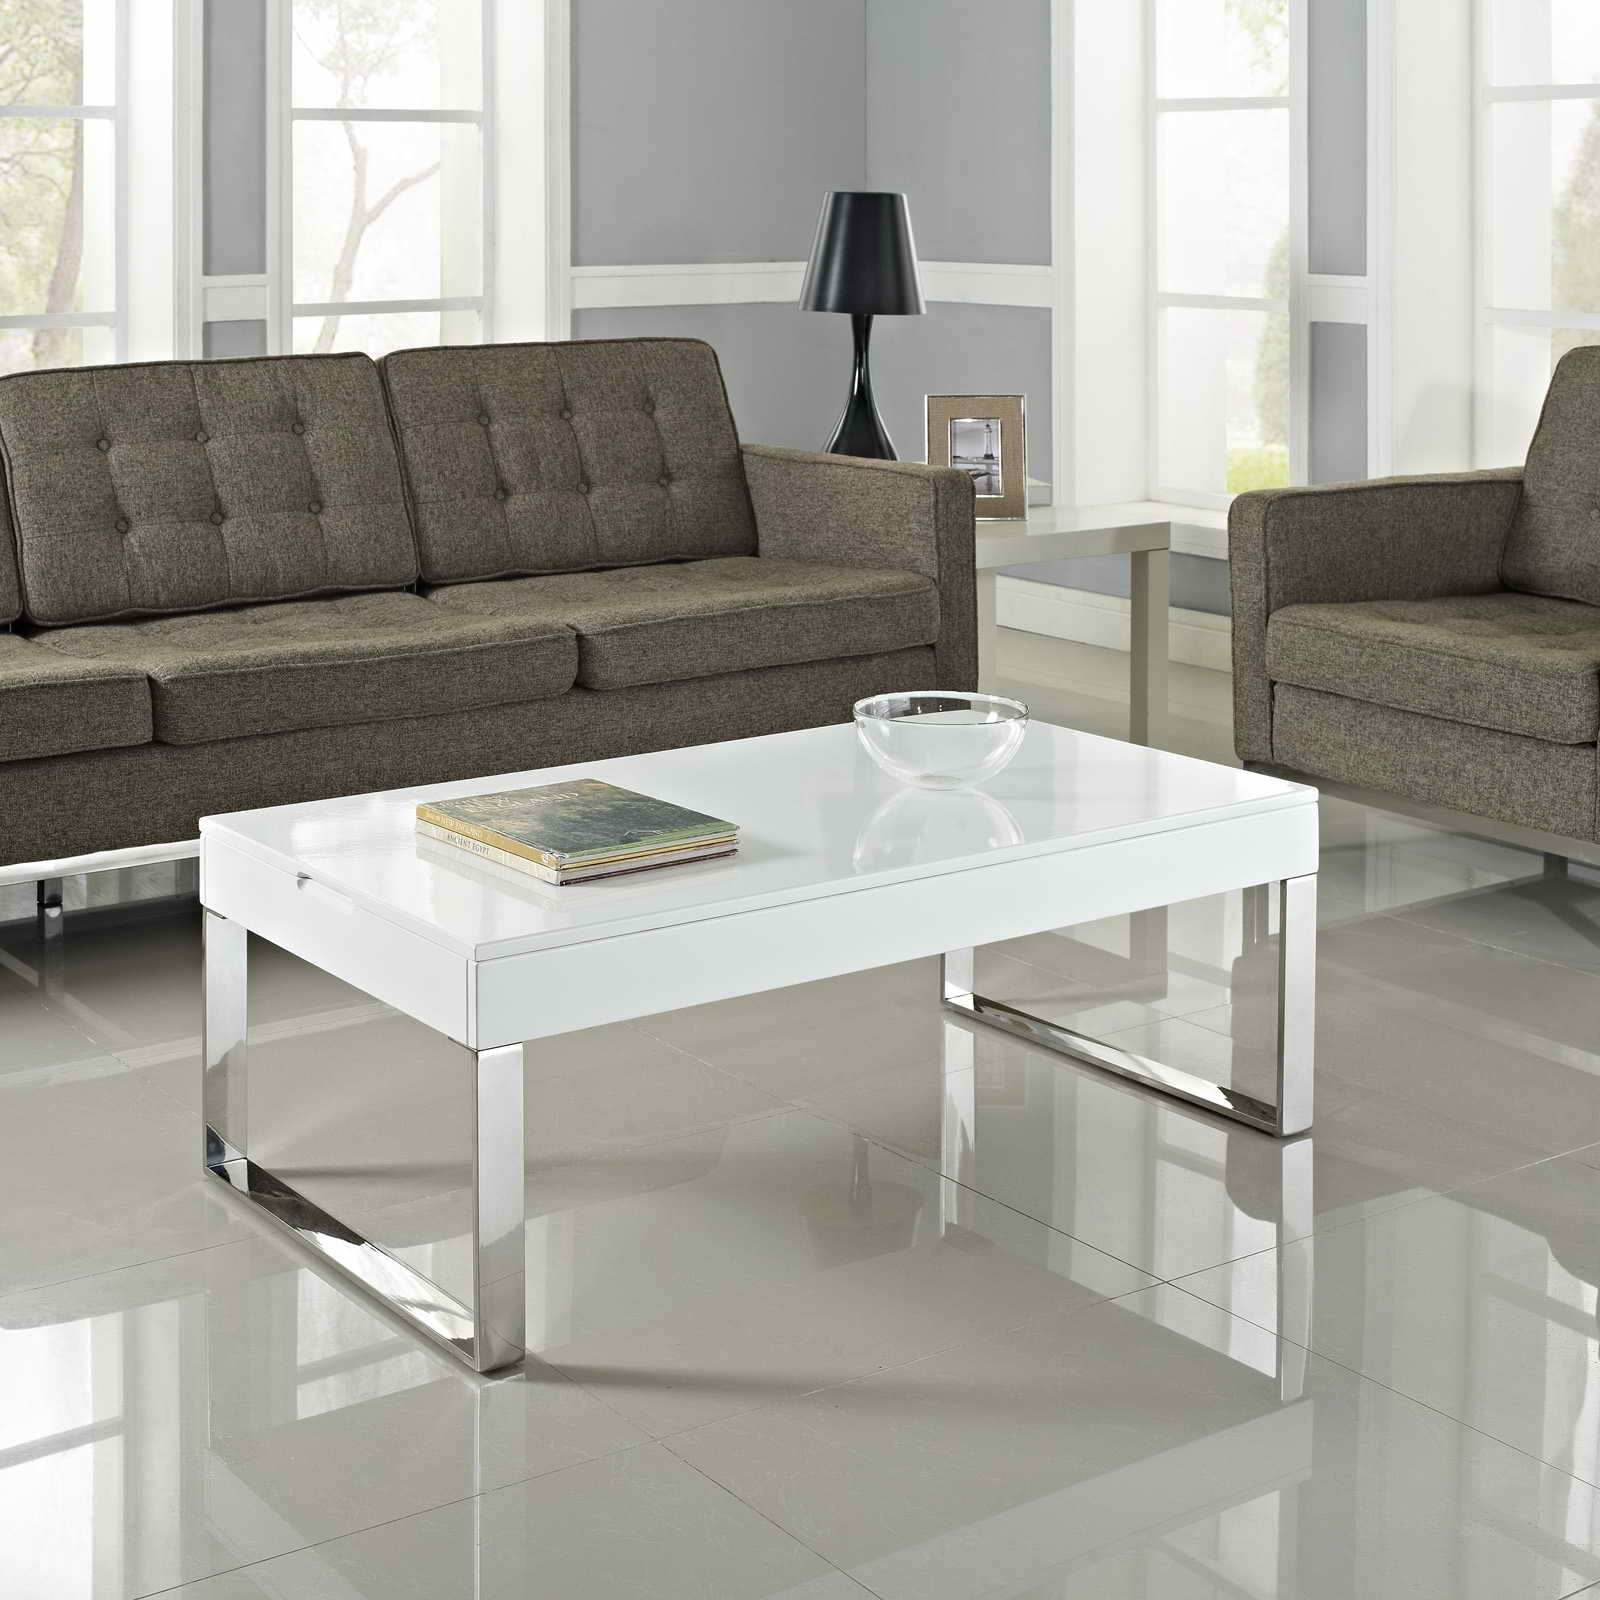 ikea living room tables artwork amazing lucite coffee table homesfeed white lift top with ceramic floor and large couches